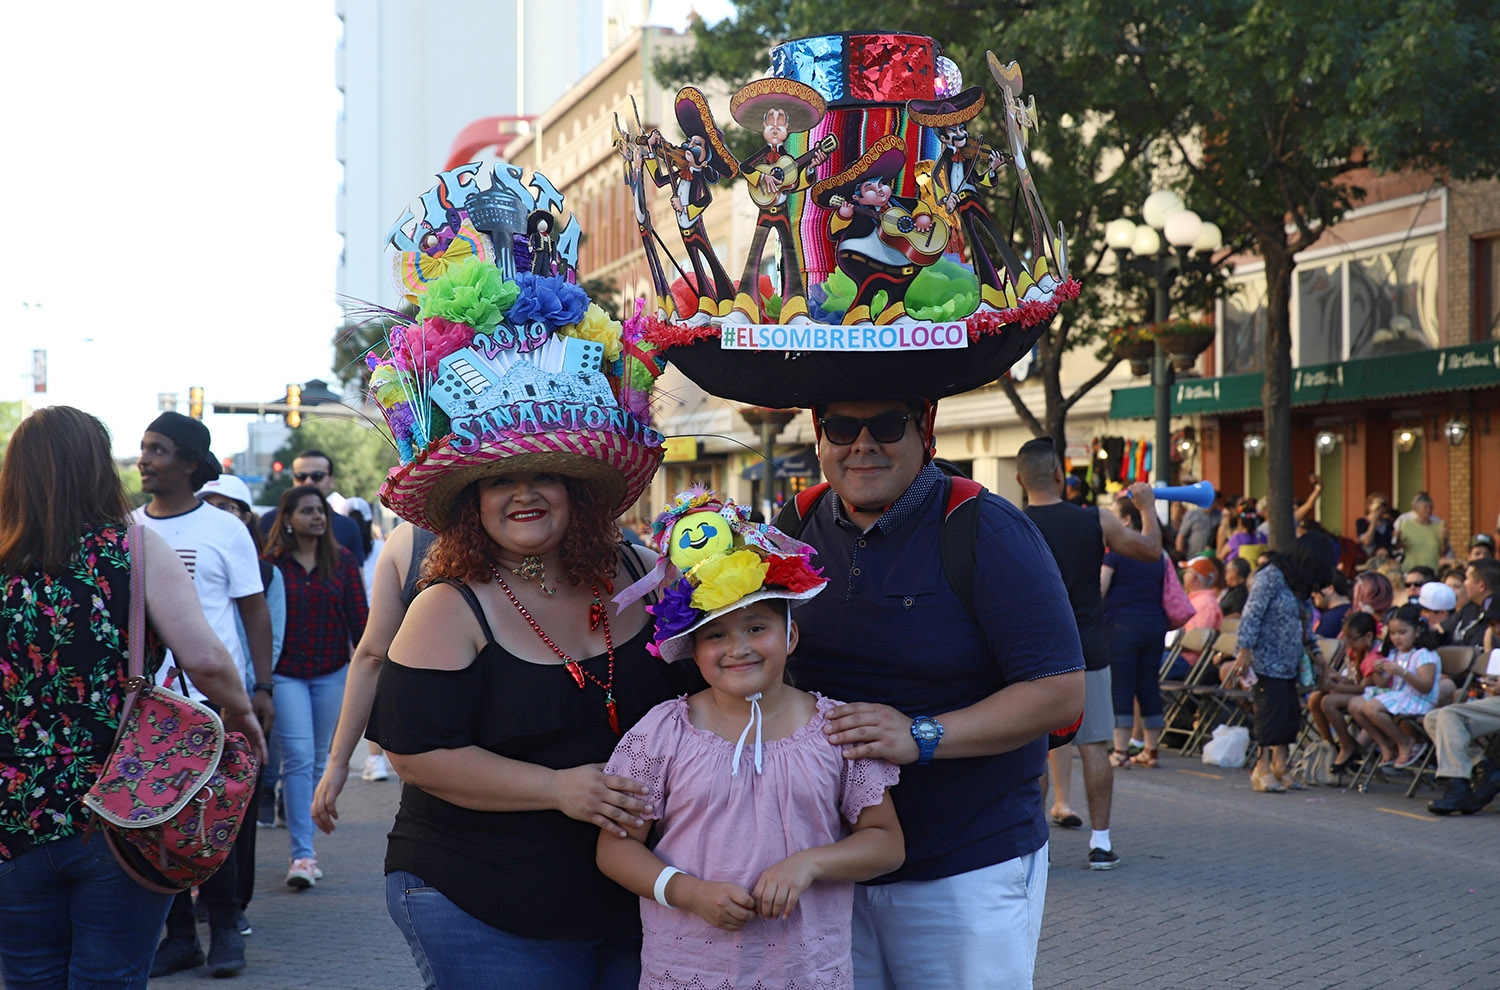 Mary Martinez, 36; Avinna Martinez, 7; and Candelario Gomez, 35, show off their Fiesta hats at the Flambeau Parade on Saturday. Gomez said his hat weighs 15 pounds because it holds a disco ball and two speakers. <em>Photo by Brianna Rodrigue | Heron contributor</em>